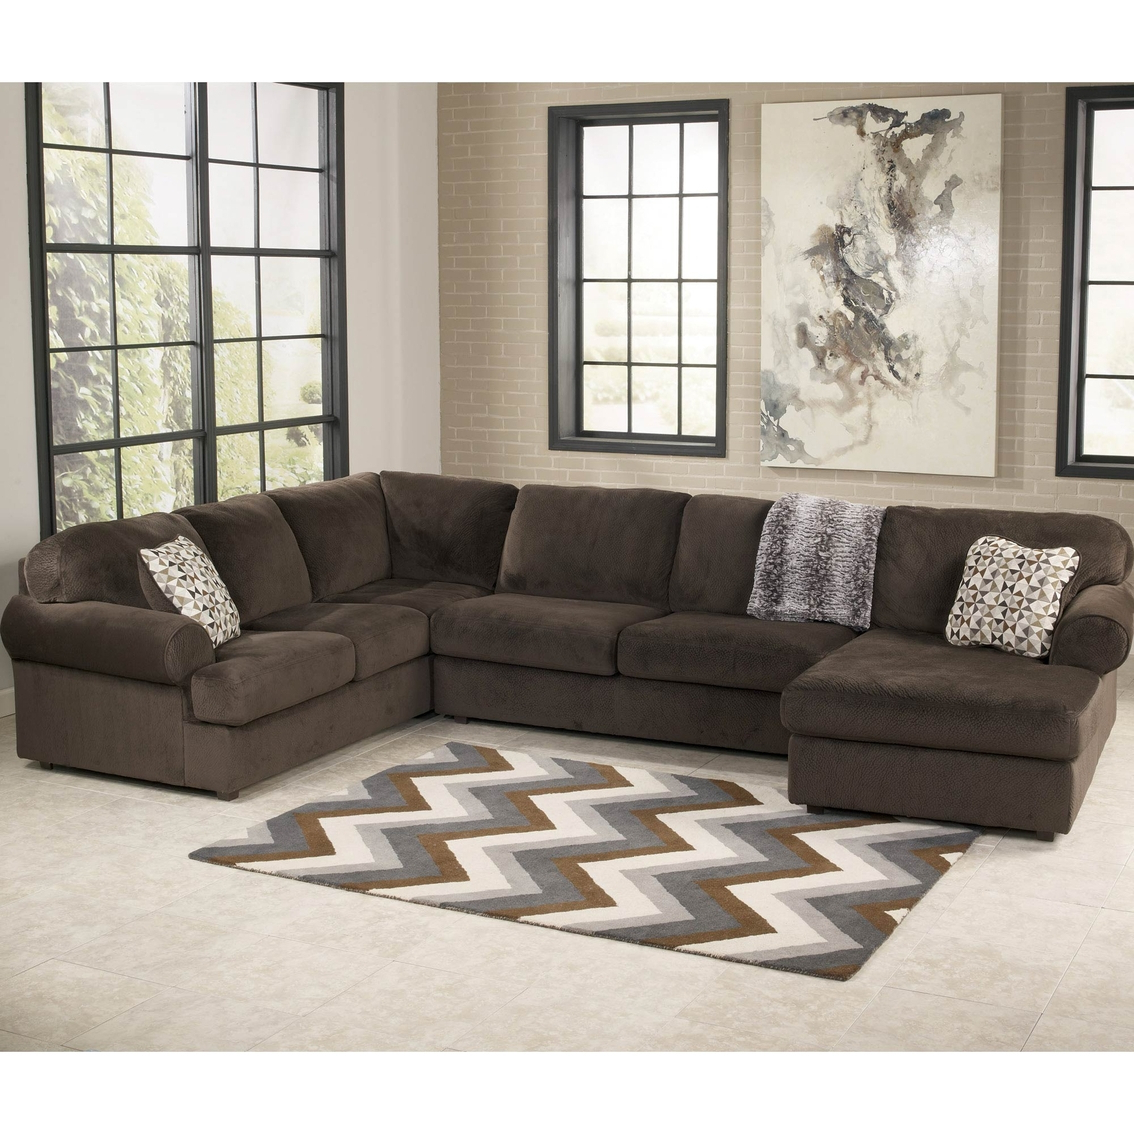 2018 Benton 4 Piece Sectionals In Amazing Signature Designashley Furniture Living Room Sectional (Gallery 15 of 20)